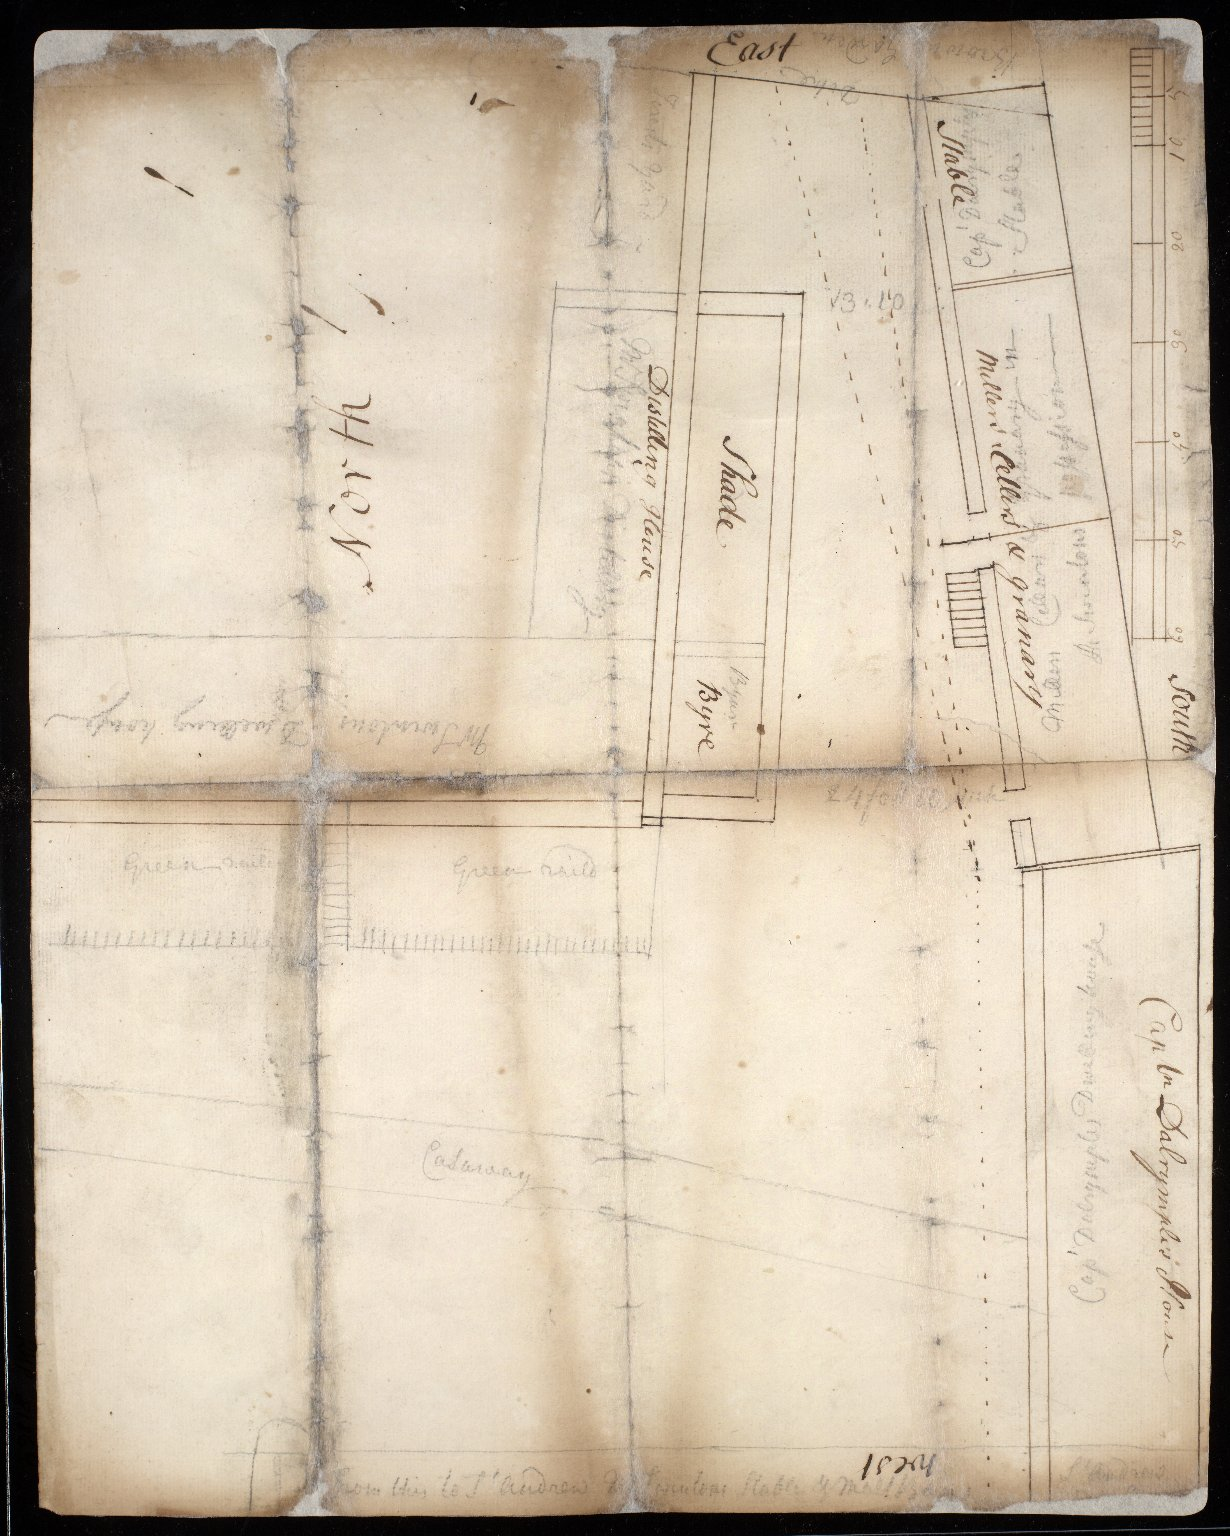 [Sketch plan of properties in North Berwick, East Lothian, including Captain Dalrymple's house and Mr. Swinton's Distillery] [1 of 2]